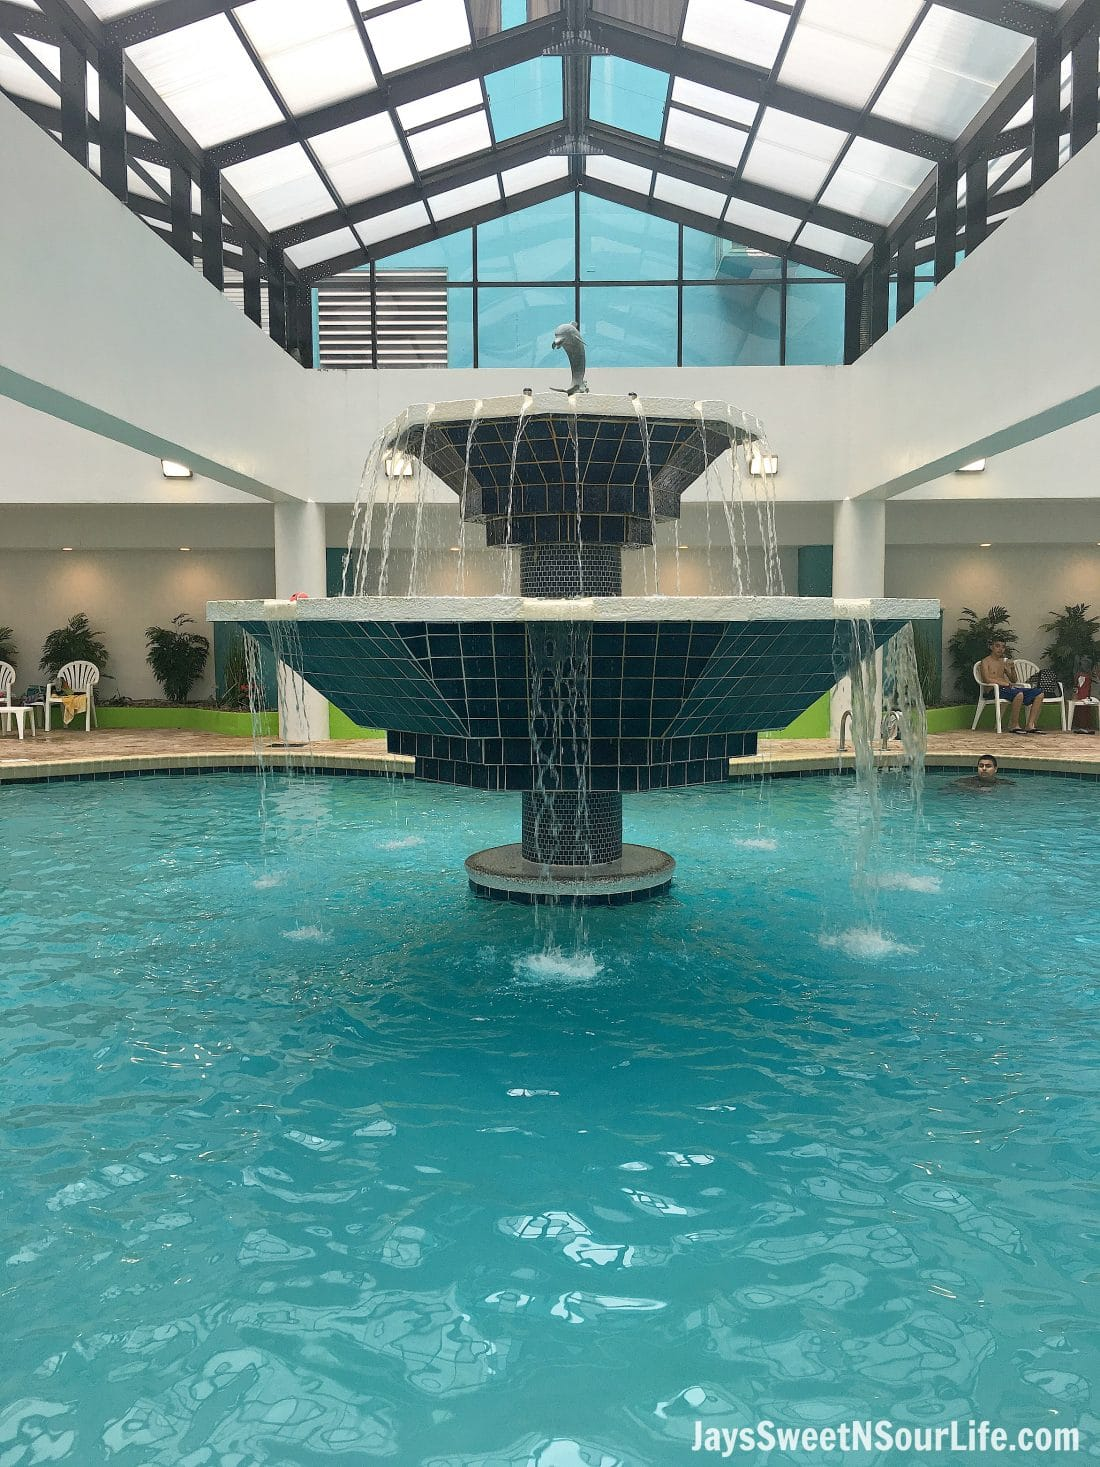 ENjoy one of the many indoor pool areas inside of The Landmark Resort in Myrtle Beach.